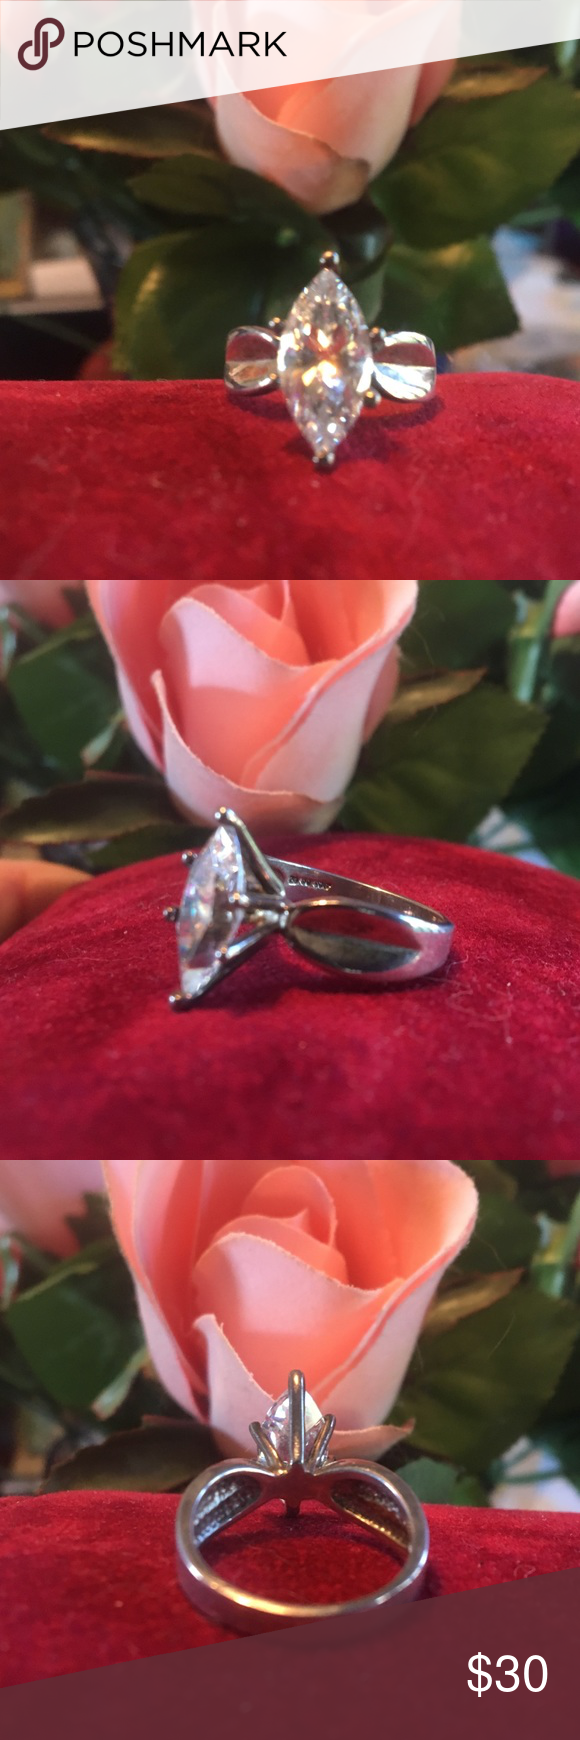 Marquis CZ silver ring Brand new/ never worn .925 silver ring with large 1.5x.6 cm CZ marquis stone with very nice sparkle! 16 mm/ size 5 ring Jewelry Rings